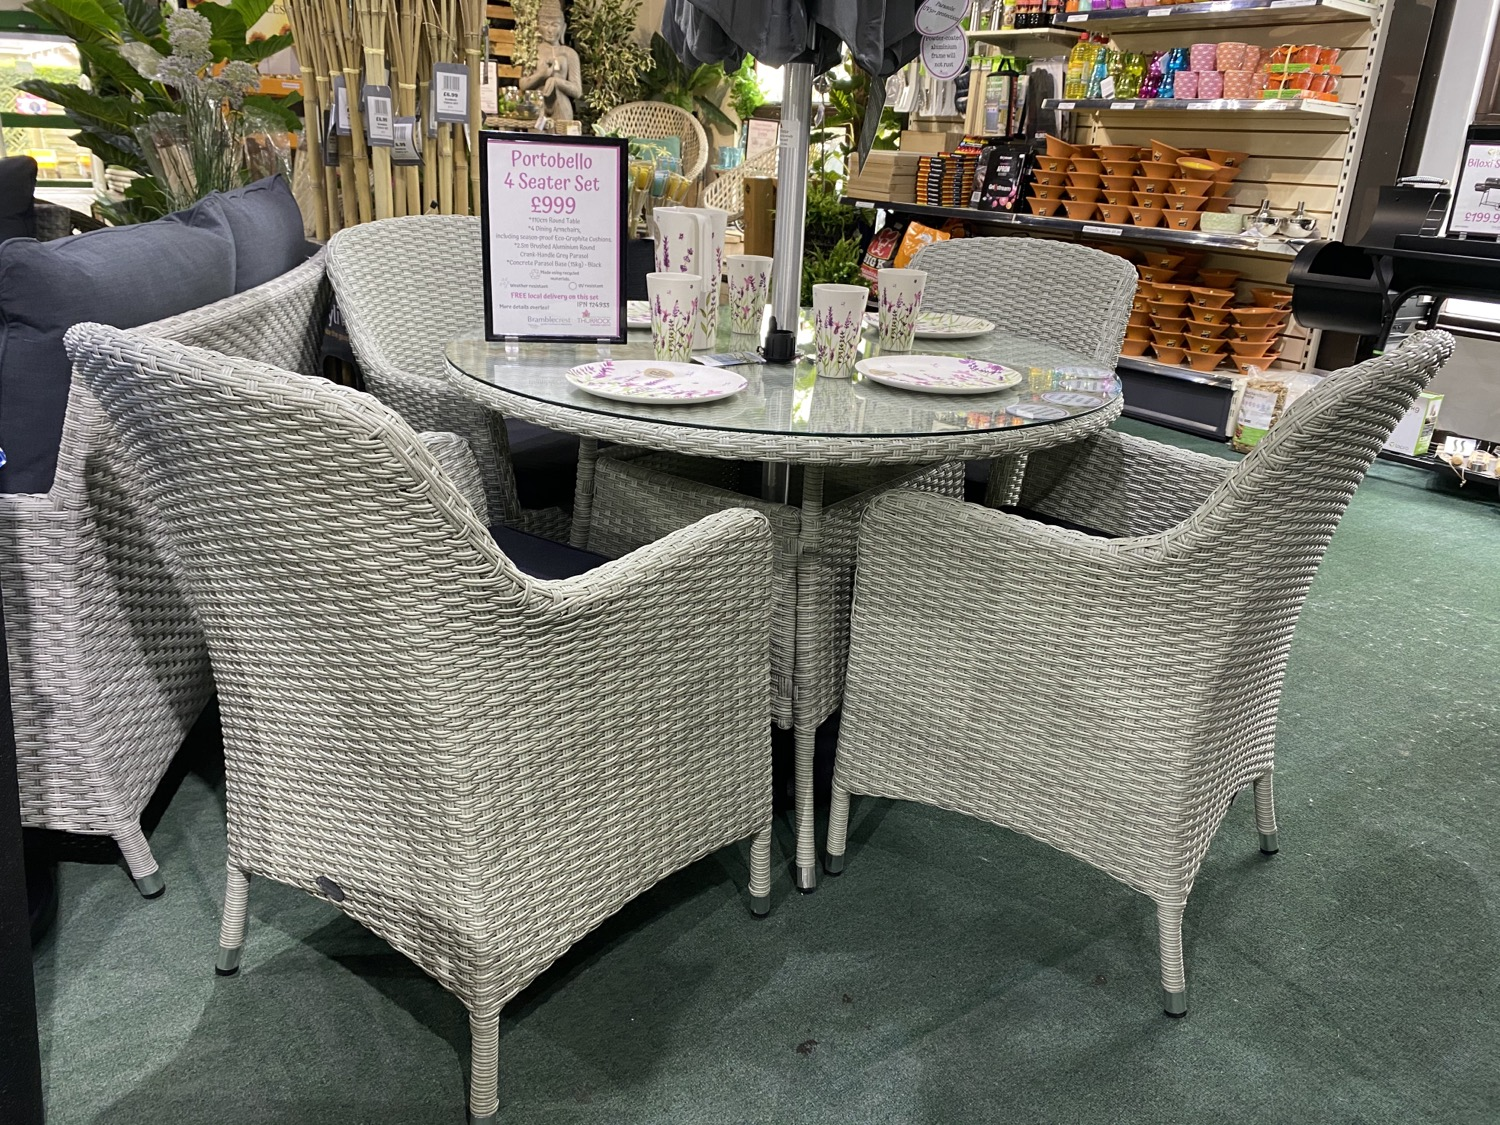 Portobello 4 Seater Set with Parasol - £999